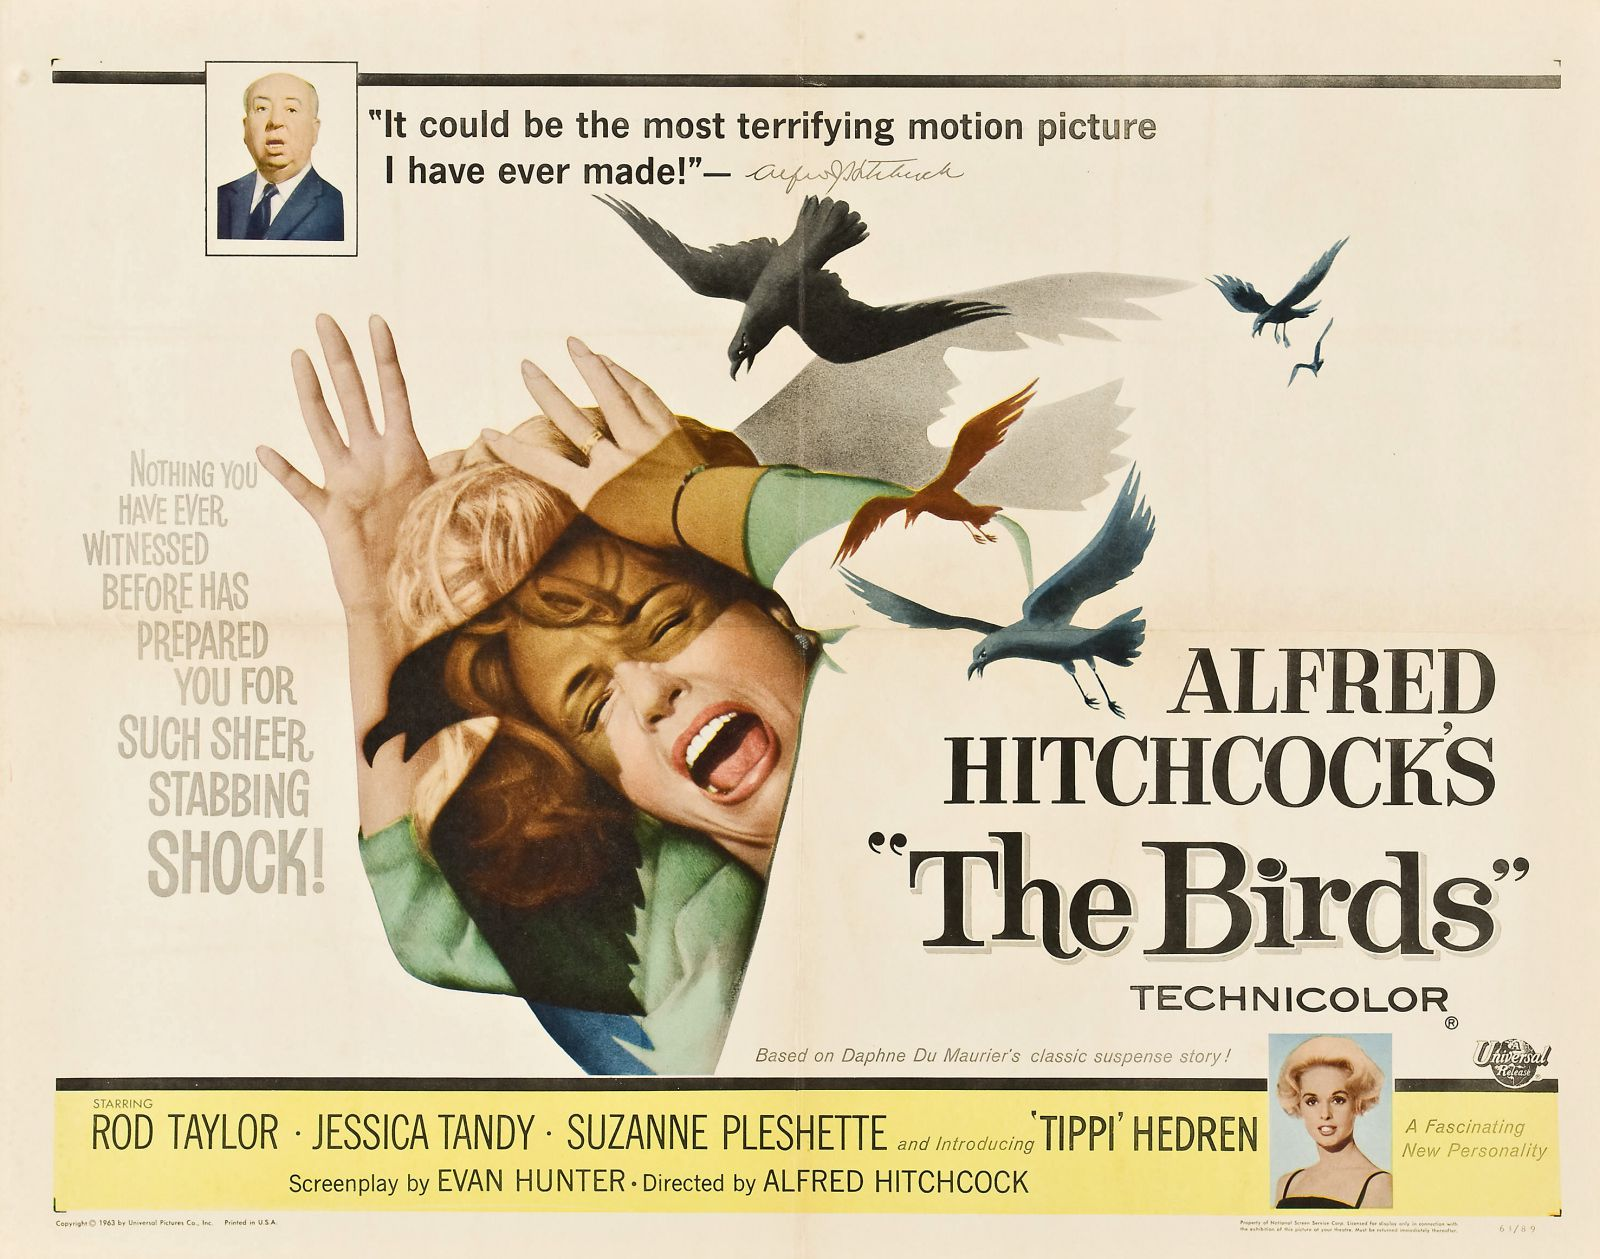 The Birds - Alfred Hitchcock 1963 - old classic cult film poster